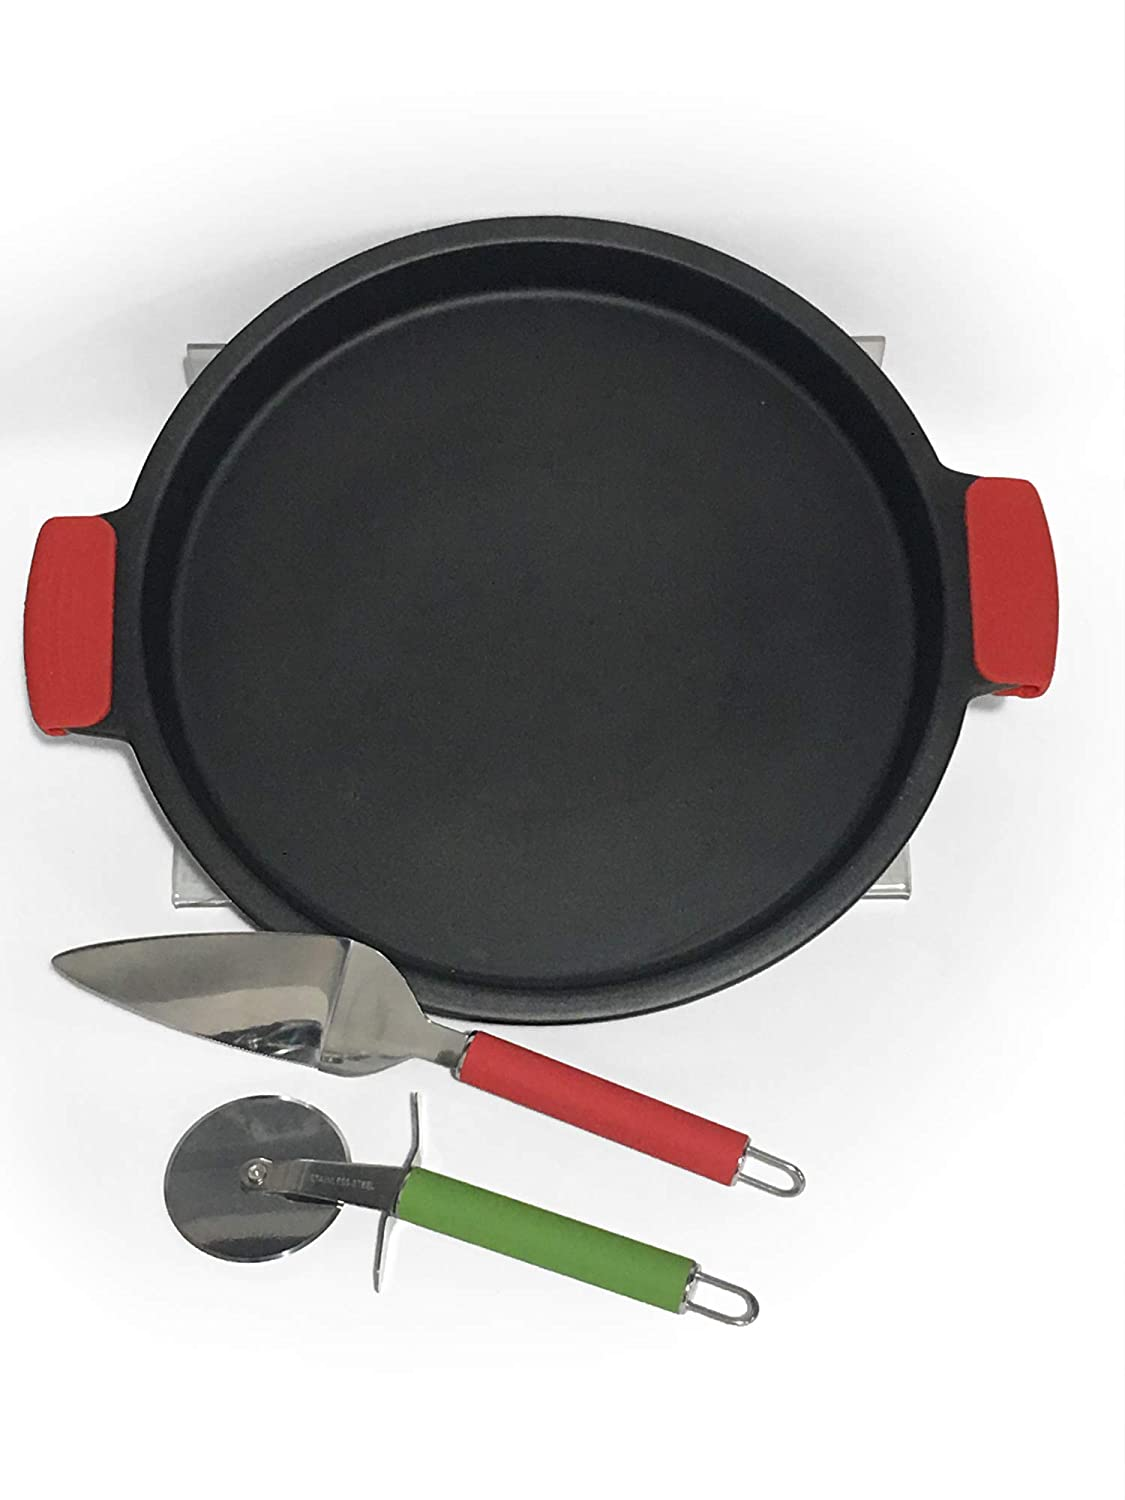 Sassafras Superstone Deep Dish Pizza Stone with Pizza Cutter and Spatula